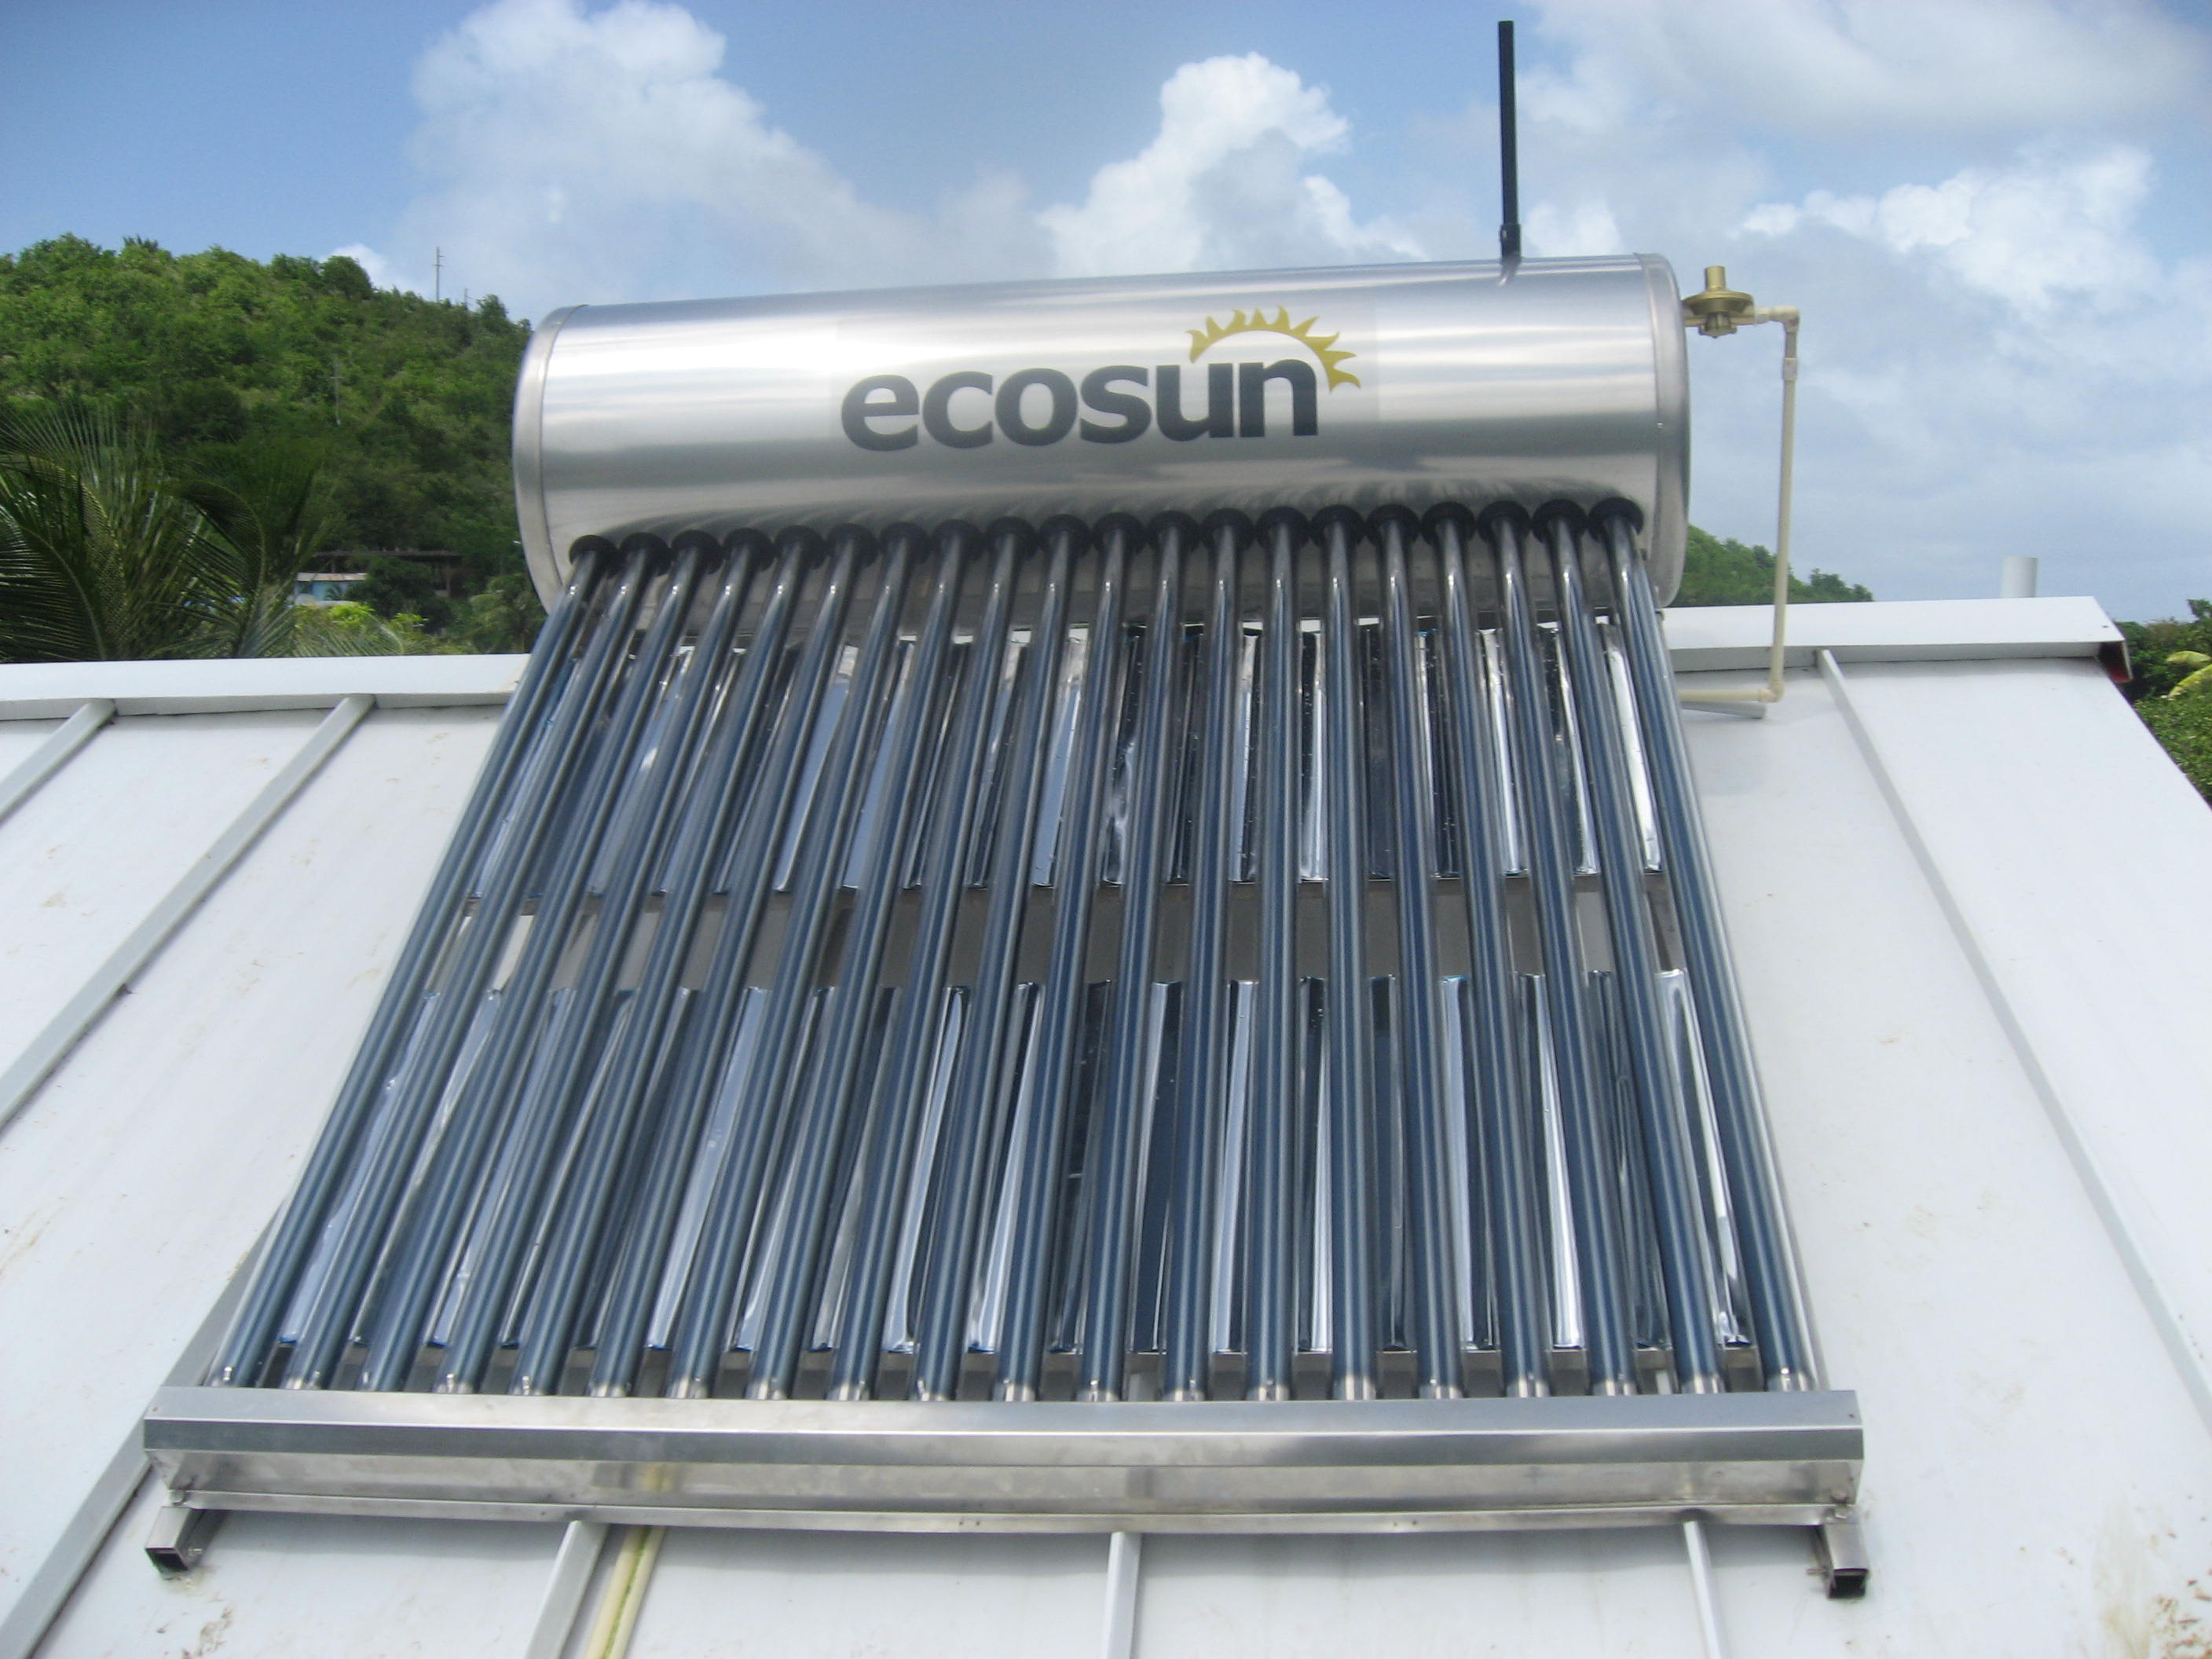 Ecosun Water Heaters